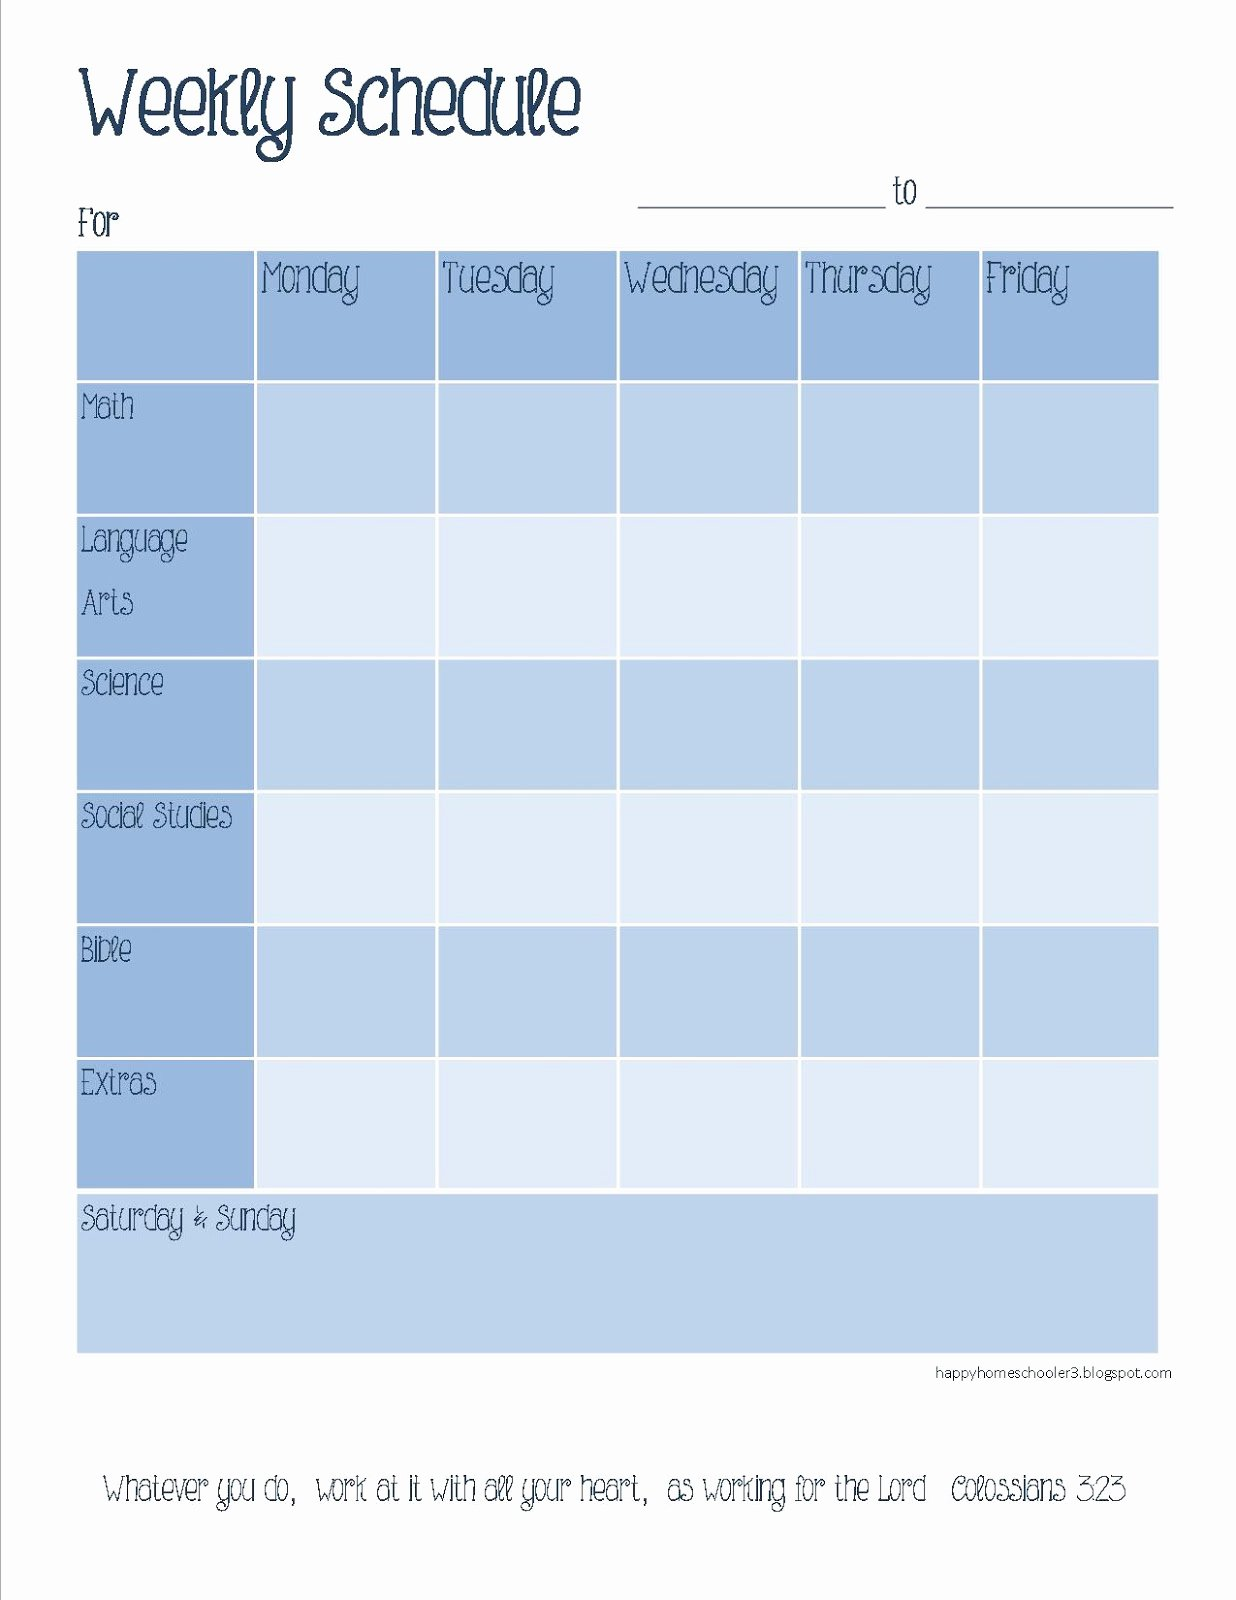 Template for Weekly Schedule Awesome the Happy Homeschooler Our Homeschool Planner A Free